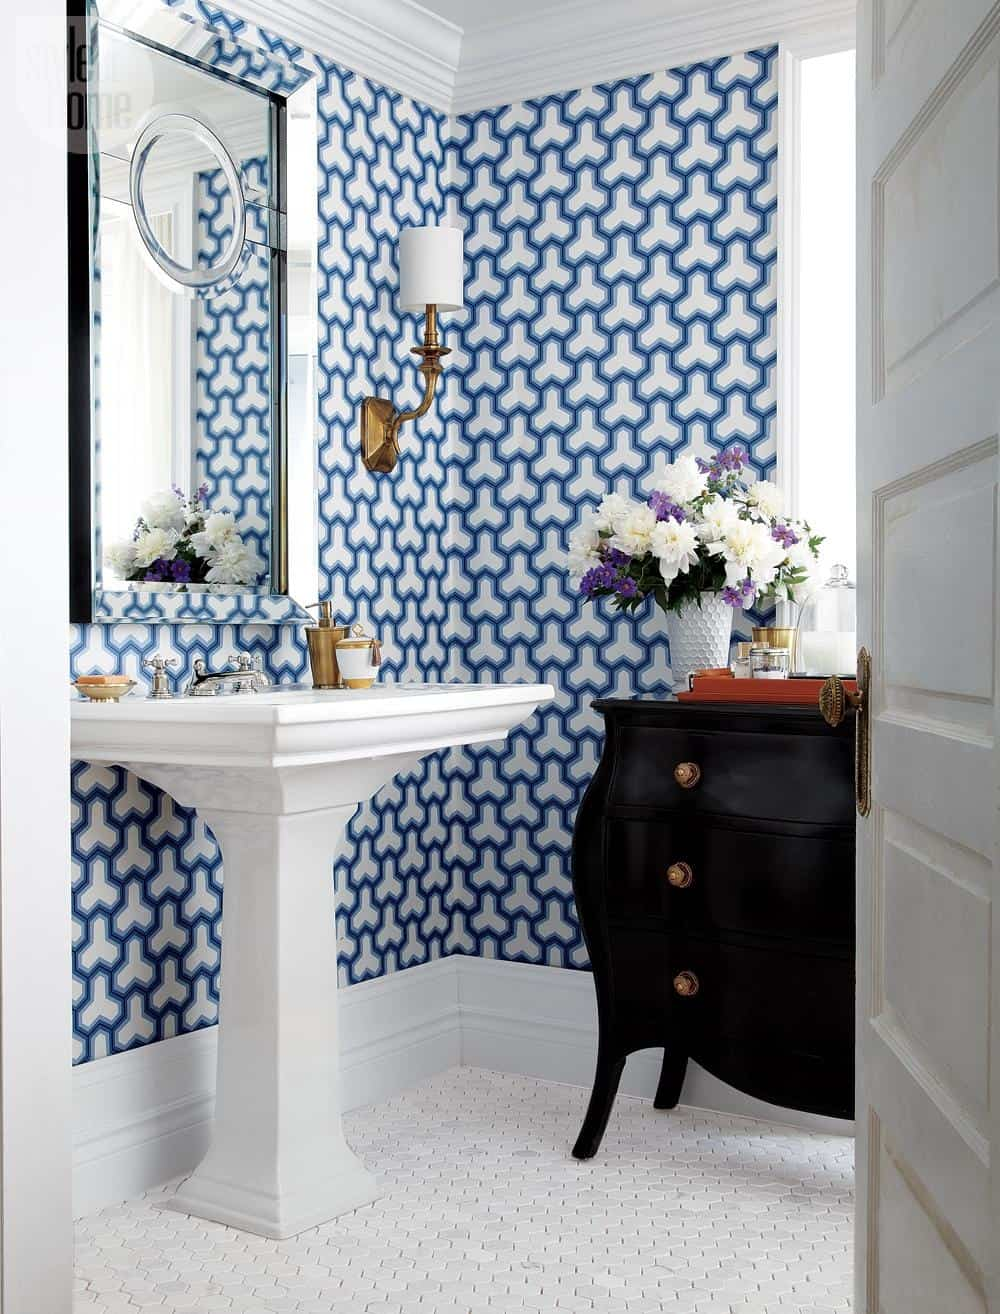 Charmant The Blue And White Wallpaper Design Brings On The Geometric In A Crisp,  Bold Look That Can Swing Both Traditional And Modern Depending On What Is  Paired ...